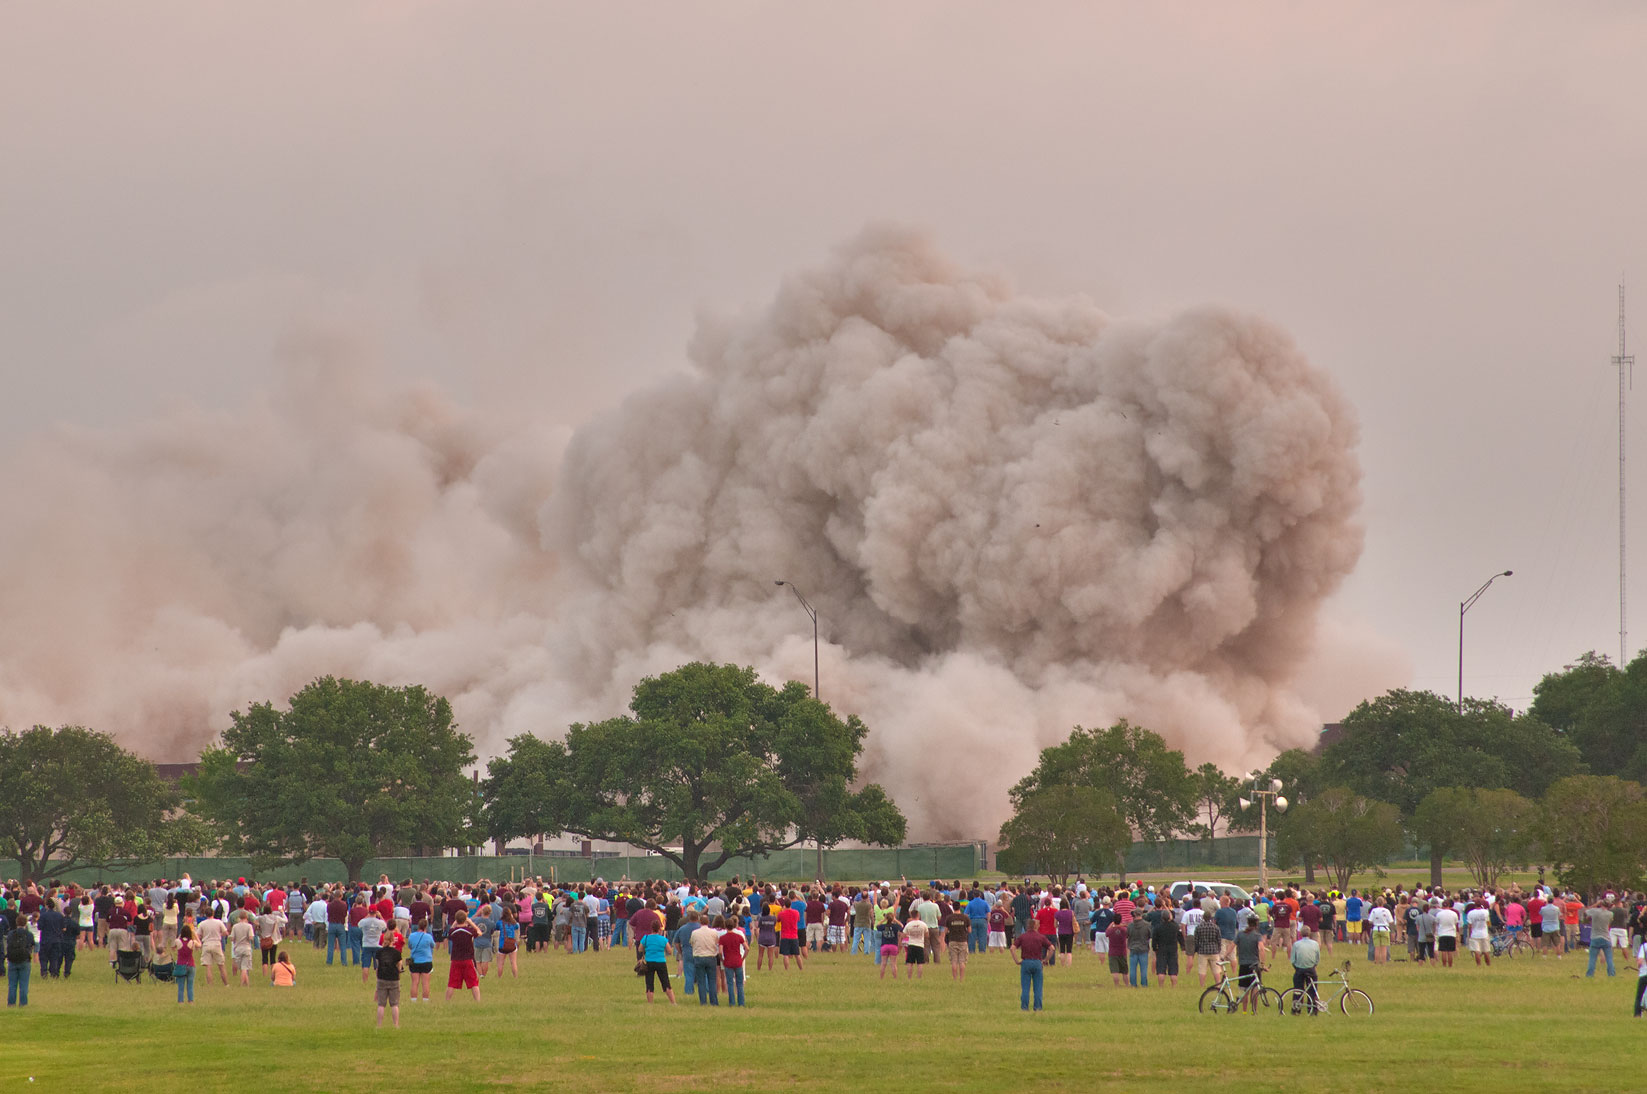 Gawkers looking on dust from implosion of Plaza Hotel (Ramada Inn). College Station, Texas